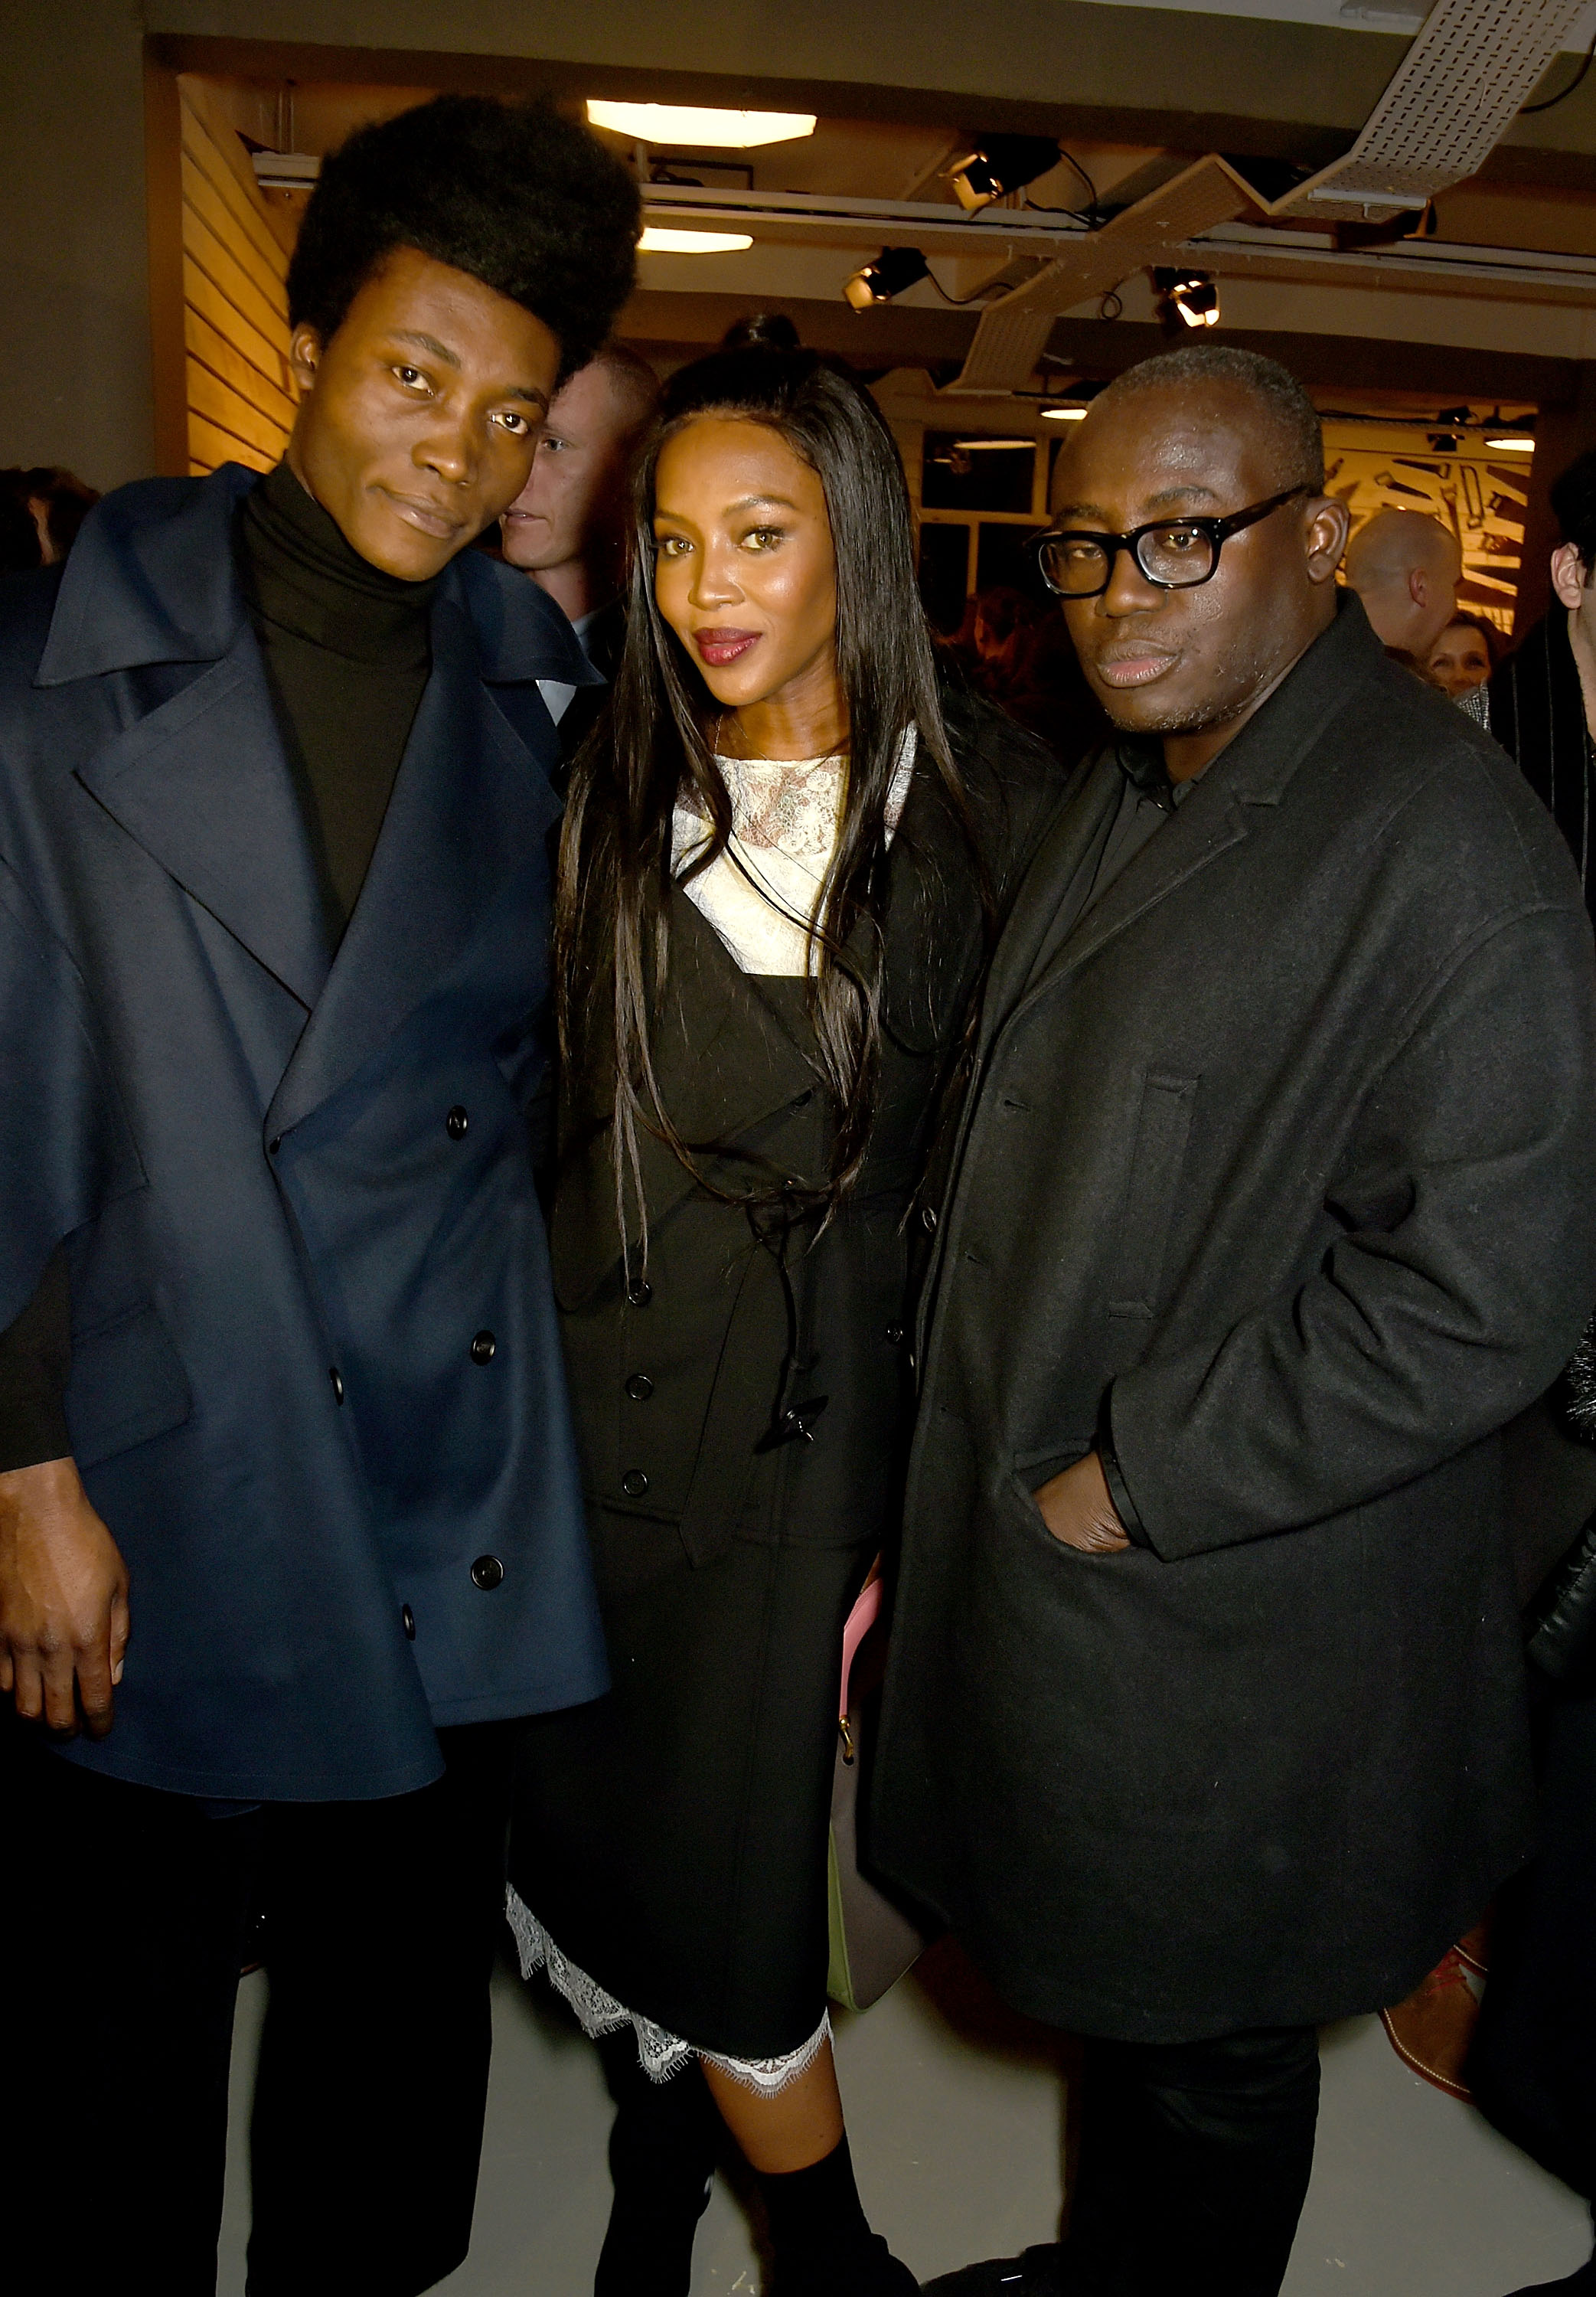 LONDON, ENGLAND - FEBRUARY 20:  (L-R) Benjamin Clementine, Naomi Campbell and Edward Enninful attend the Burberry February 2017 Show during London Fashion Week February 2017 at Makers House on February 20, 2017 in London, England.  (Photo by David M. Benett/Dave Benett/Getty Images for Burberry) *** Local Caption *** Benjamin Clementine; Naomi Campbell; Edward Enninful